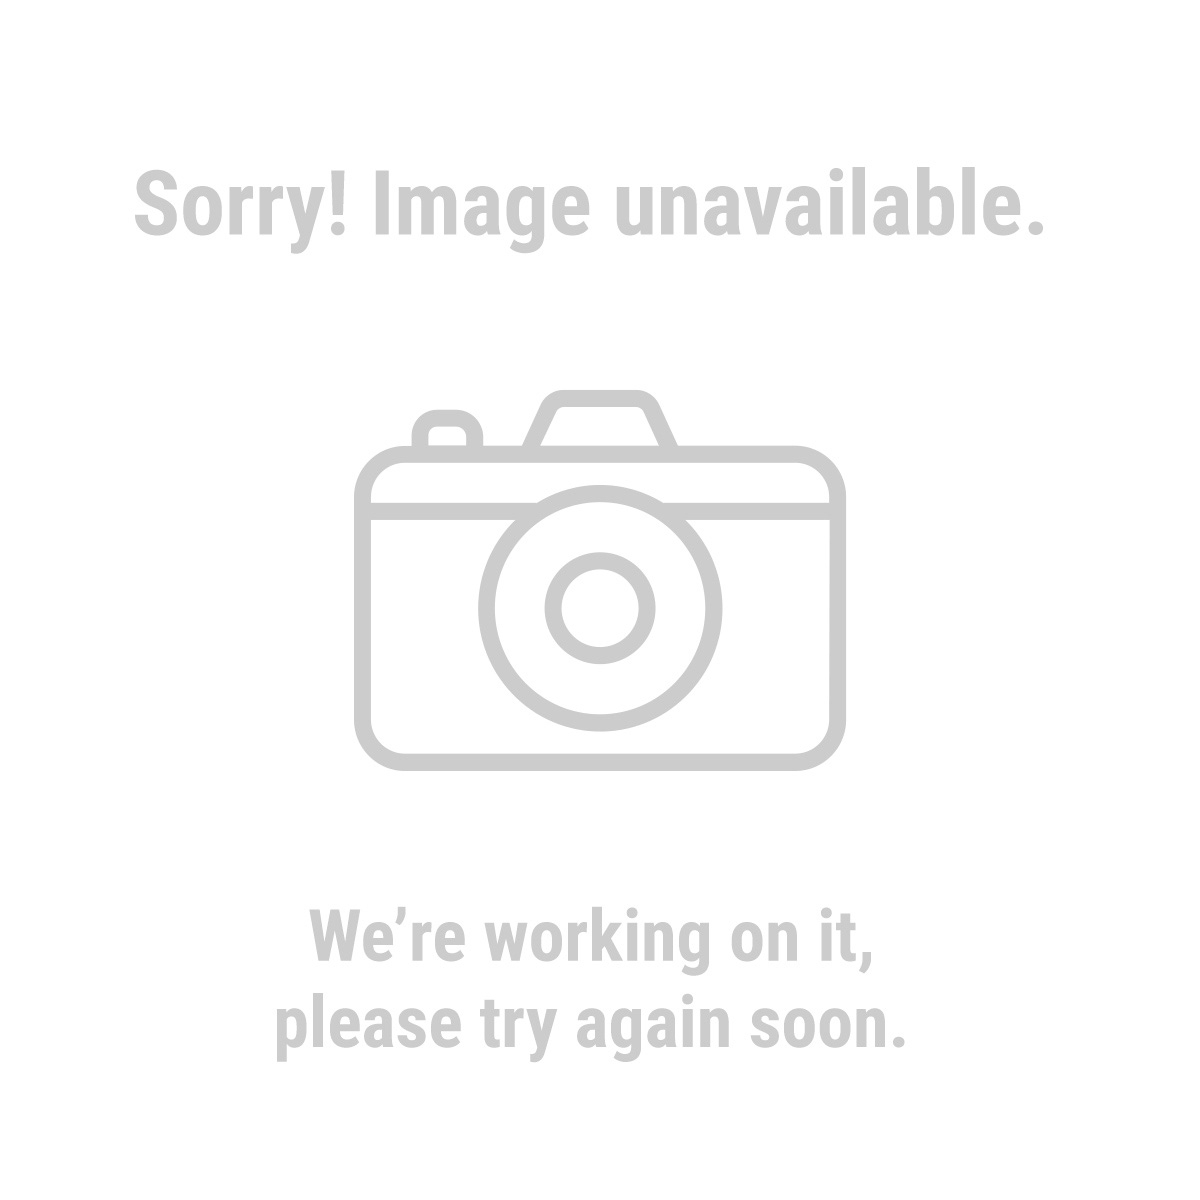 Admiral® 62725 12 in. 80T Finishing Circular Saw Blade